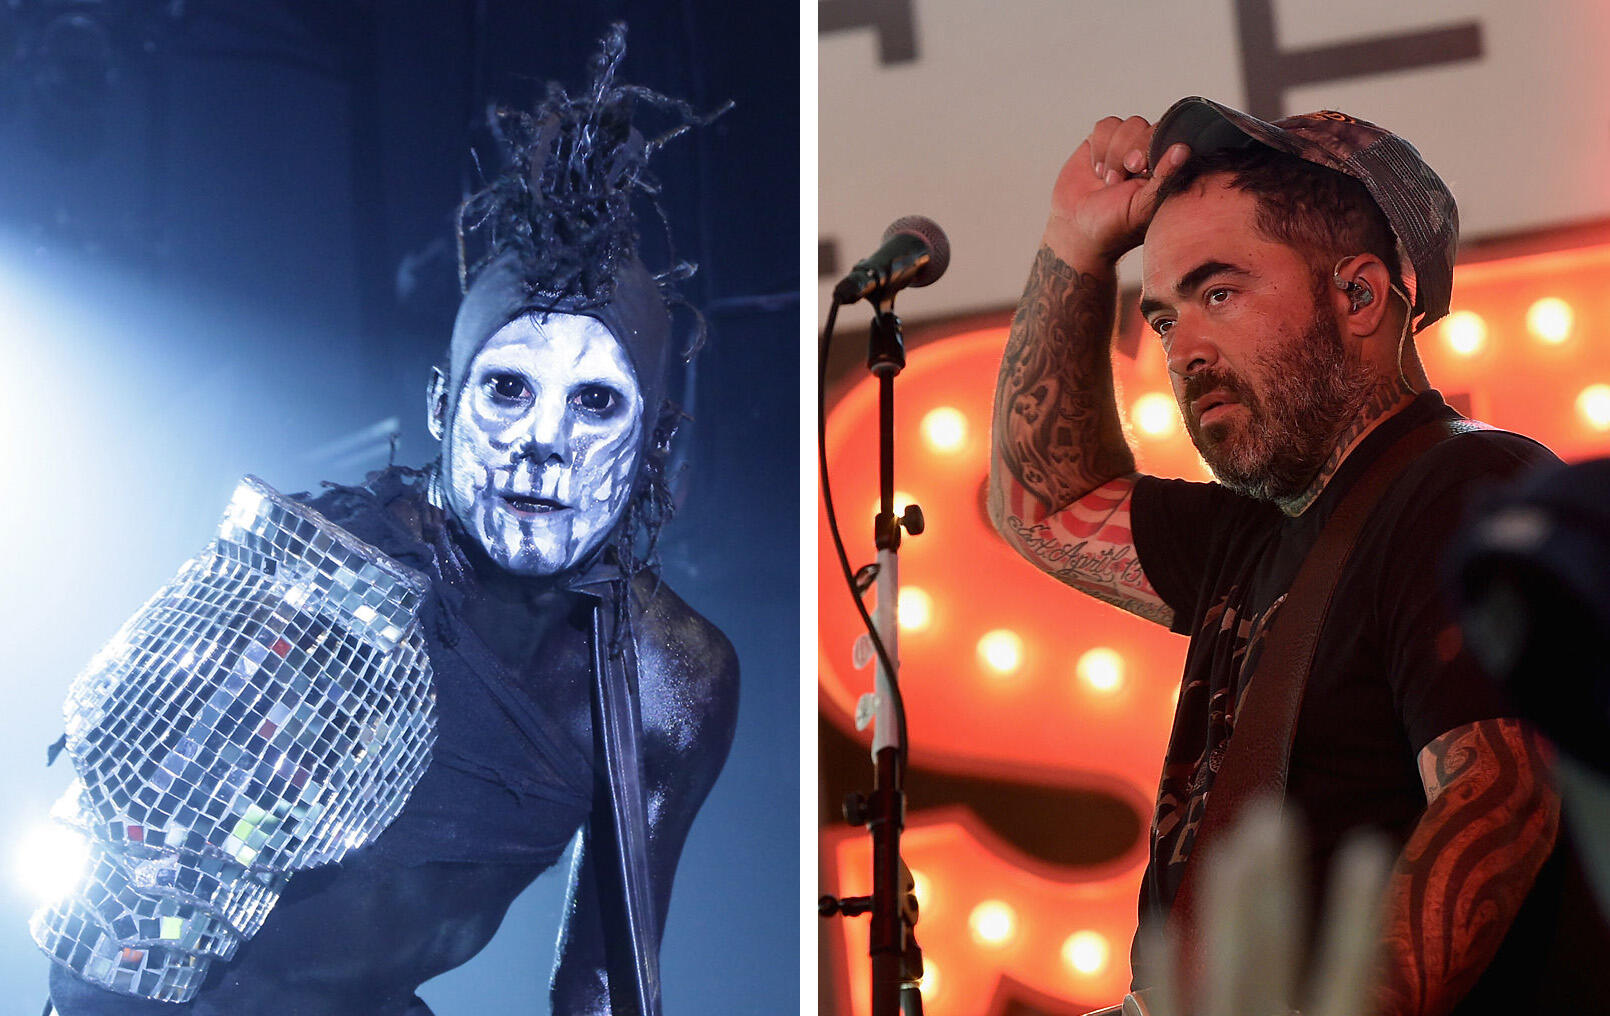 wes borland i wish nothing but the worst for aaron lewis of